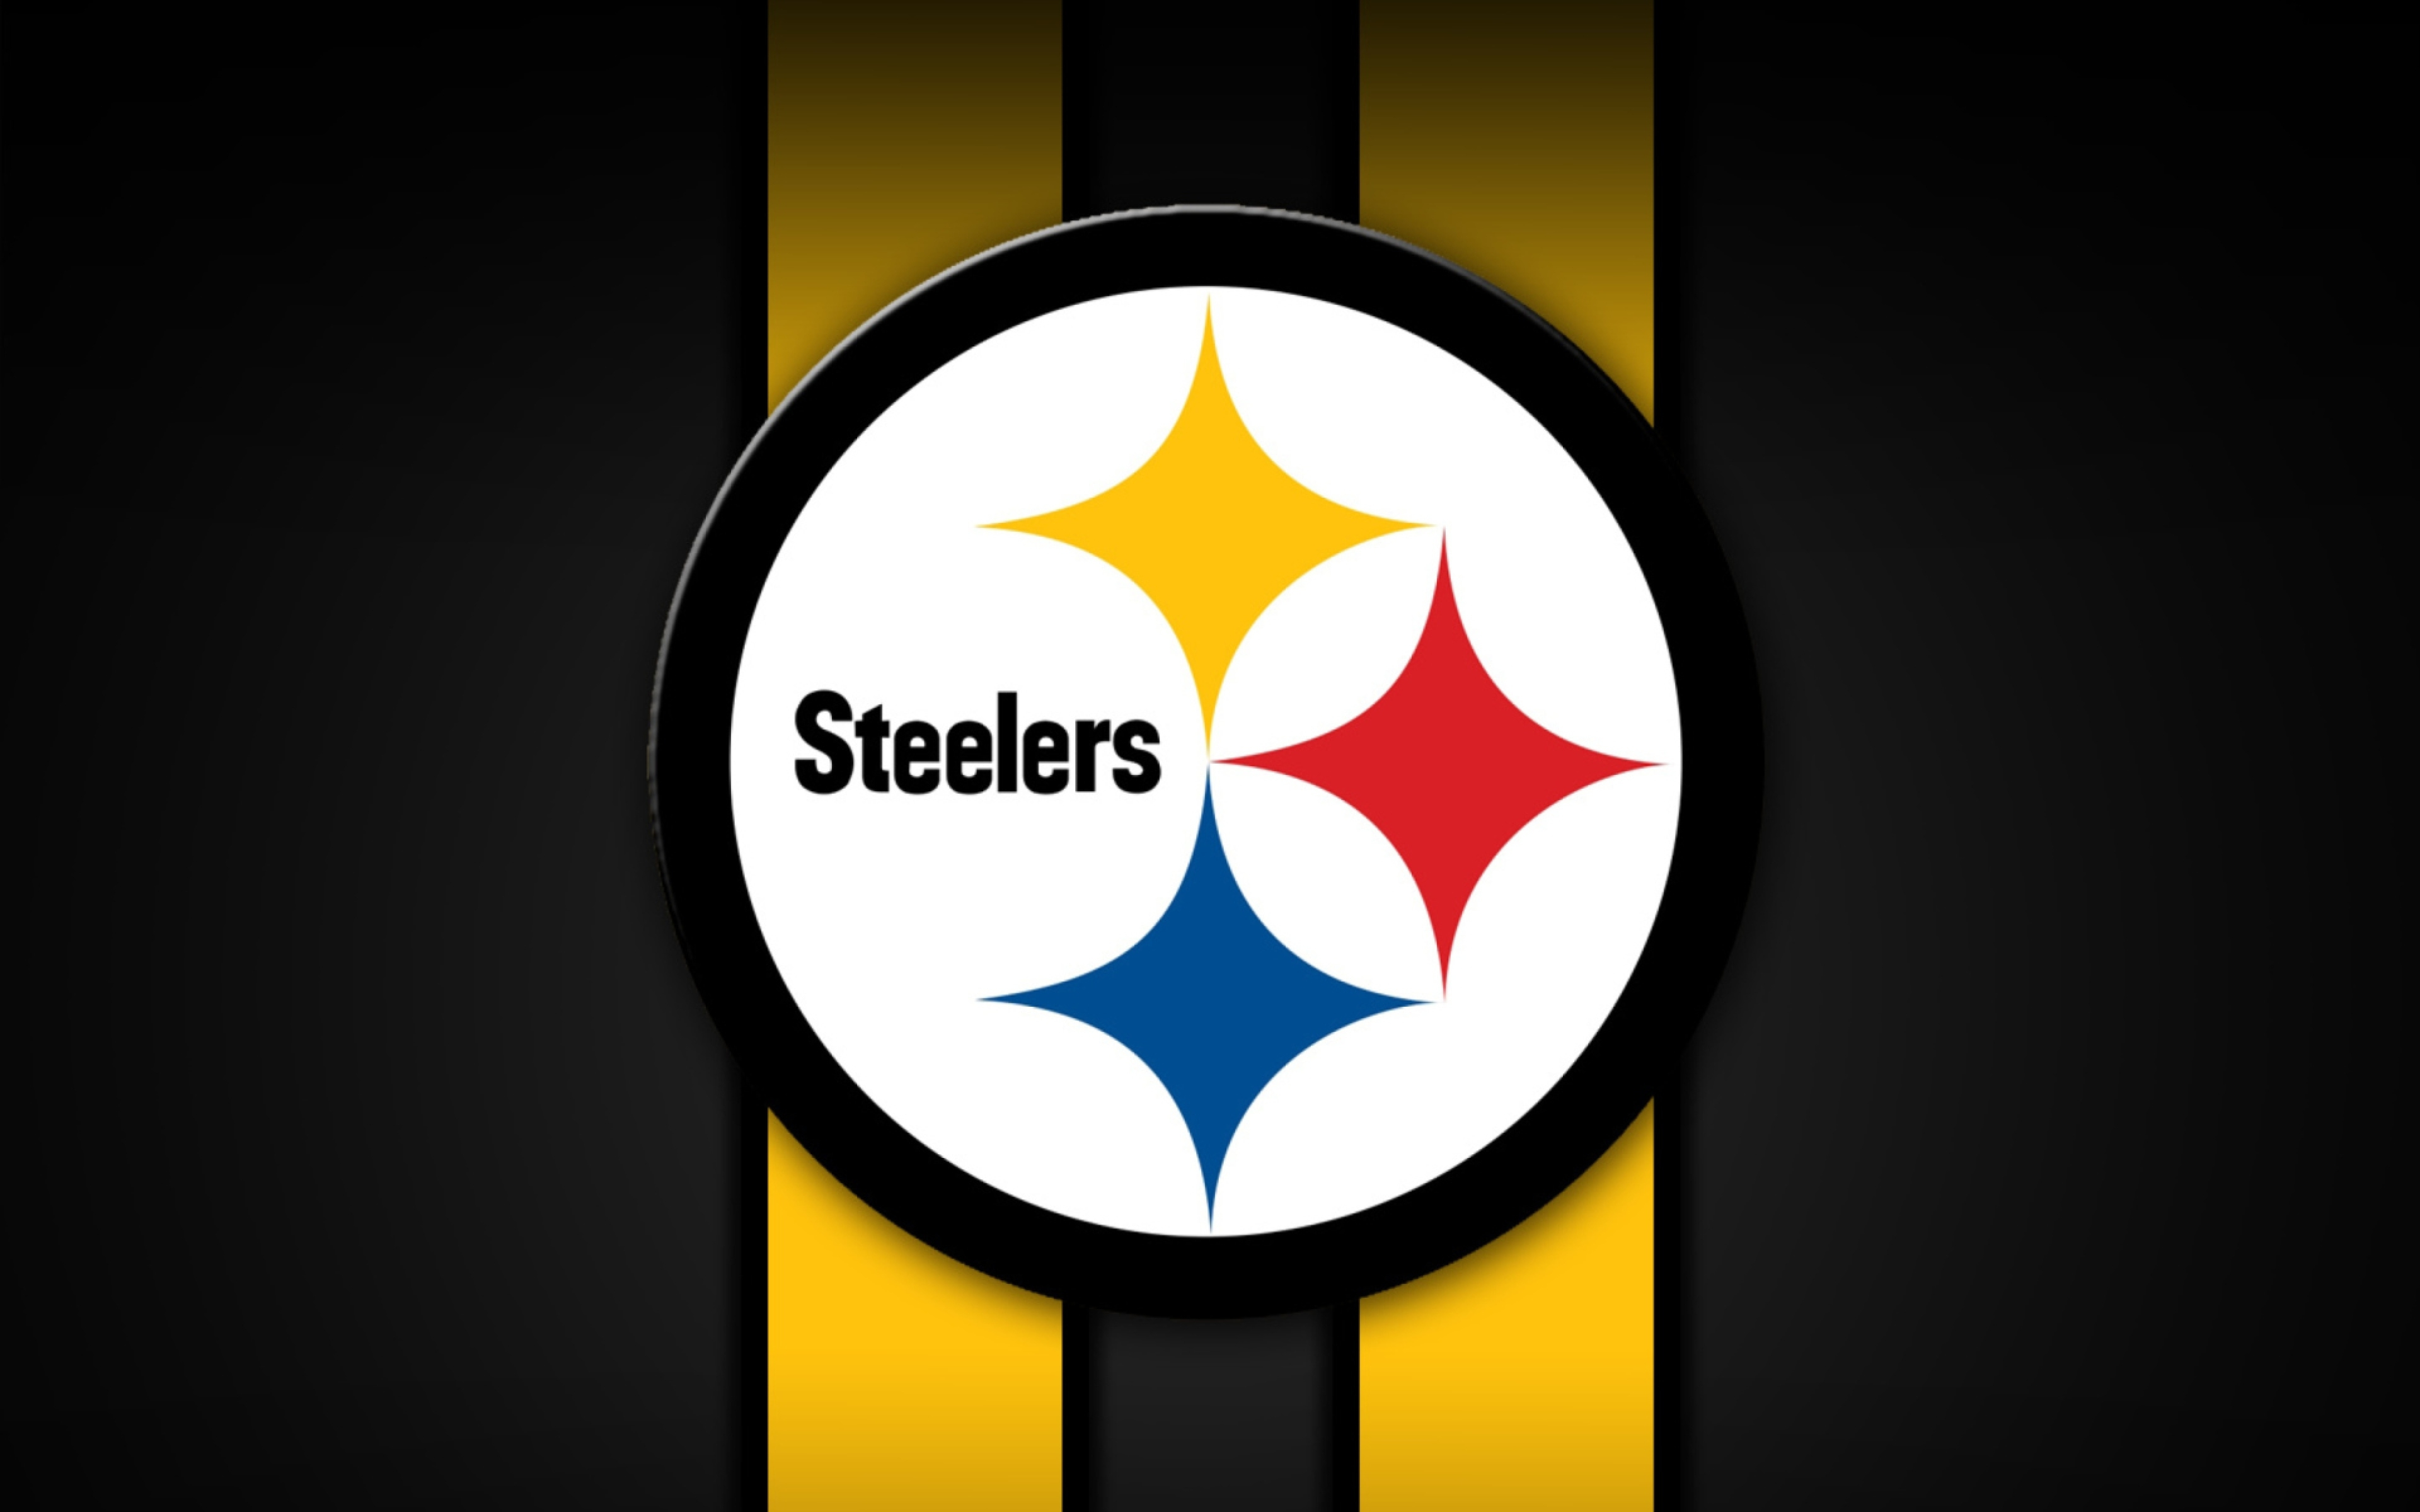 pittsburgh steelers logo wallpaper hd | pixelstalk